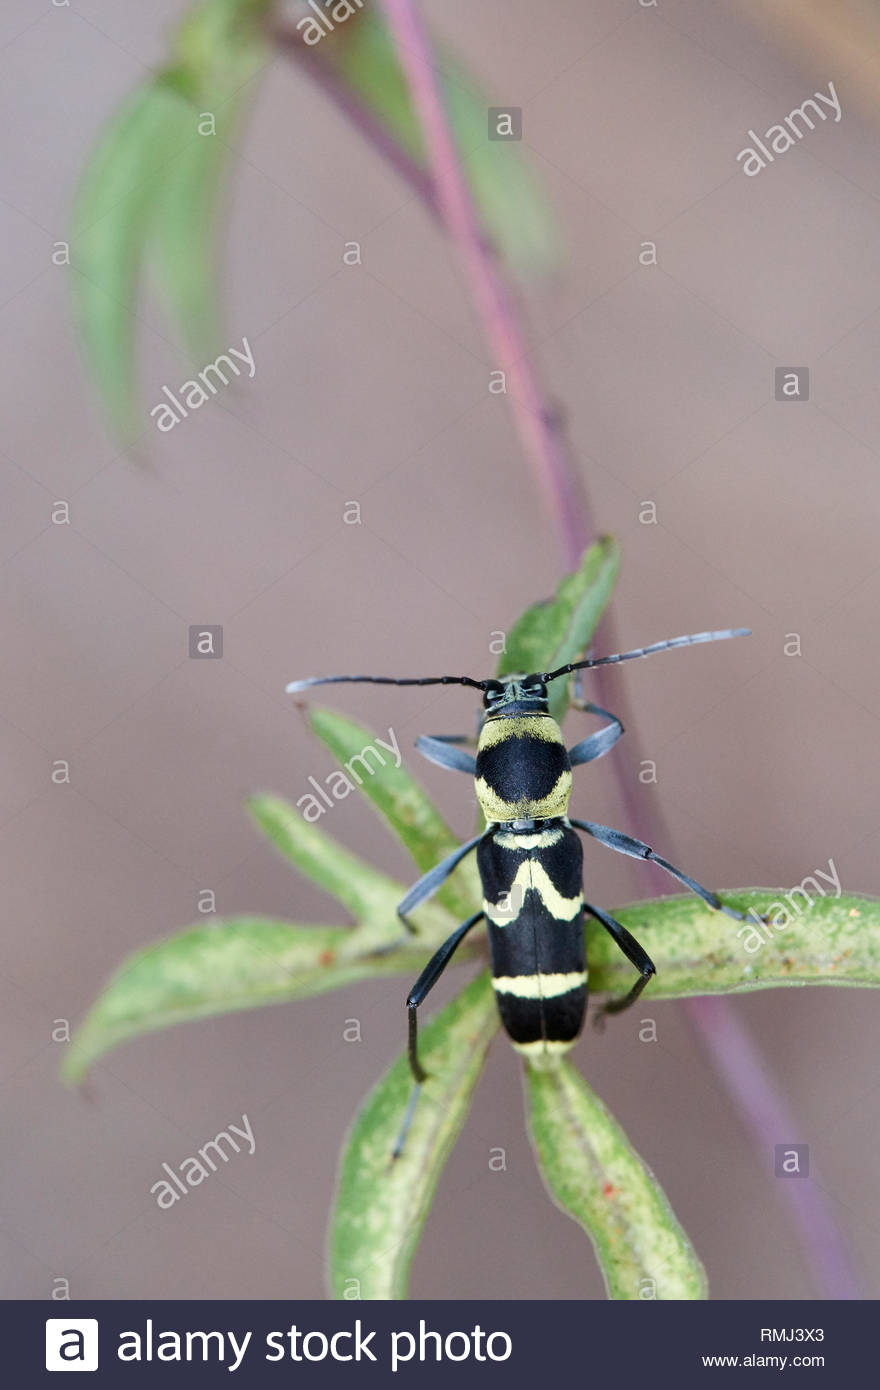 An insect macro image of the 'wasp-imitating' Clytus arietis, a longhorn beetle; clinging to a green leaf. Taken on Goodwood Island, NSW, Australia. - Stock Image